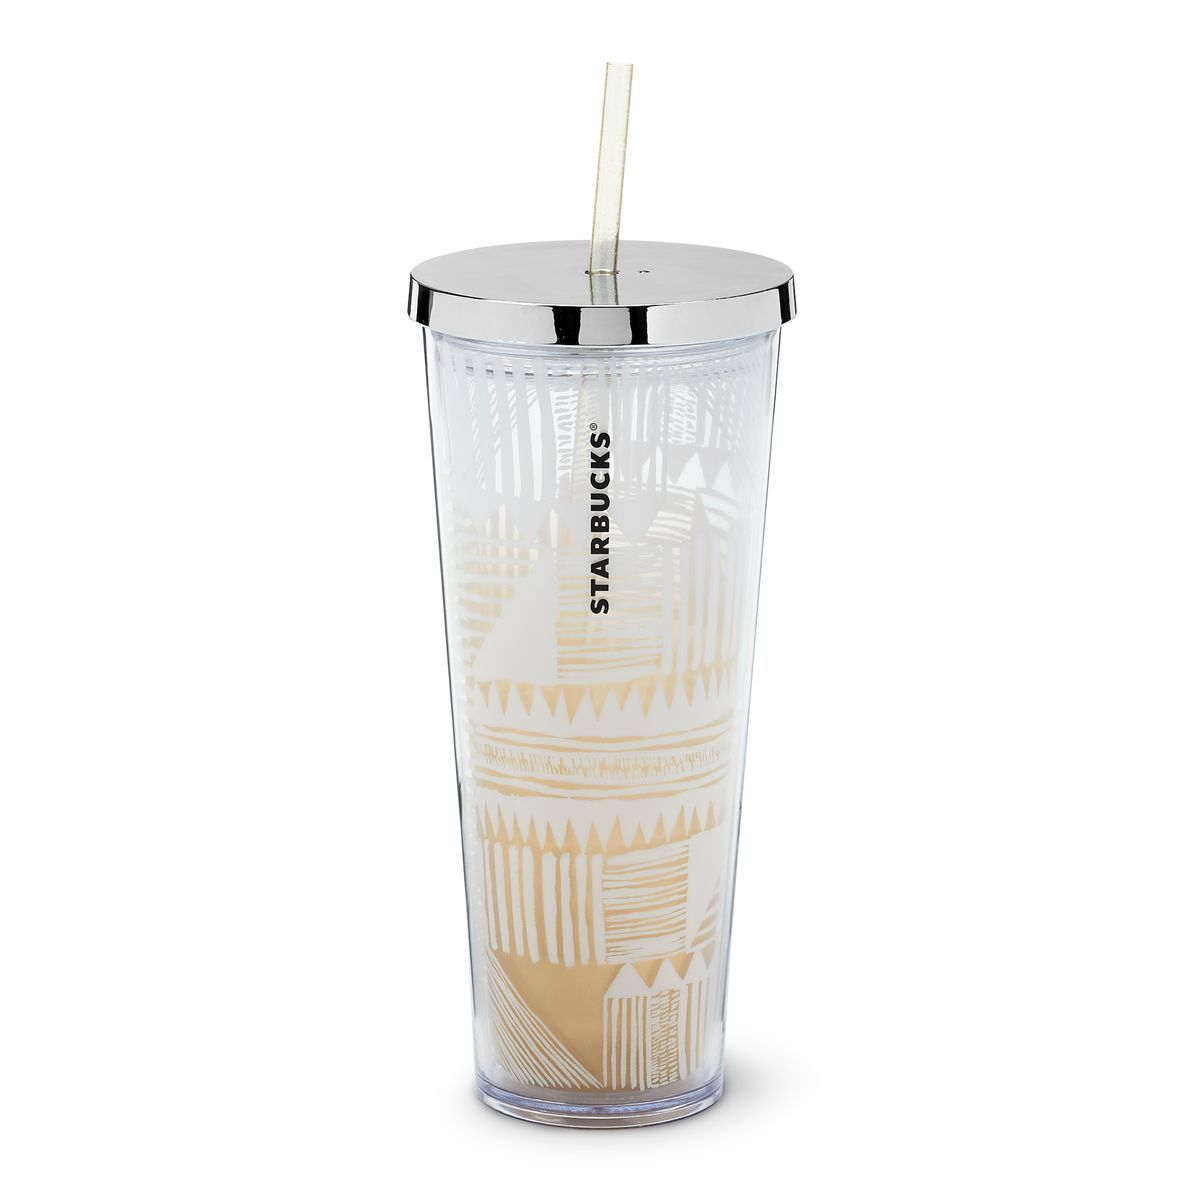 A plastic double walled cold cup featuring art inspired by our shop starbucks online canada store for coffee beans tea coffee makers mugs and tumblers and more pronofoot35fo Gallery